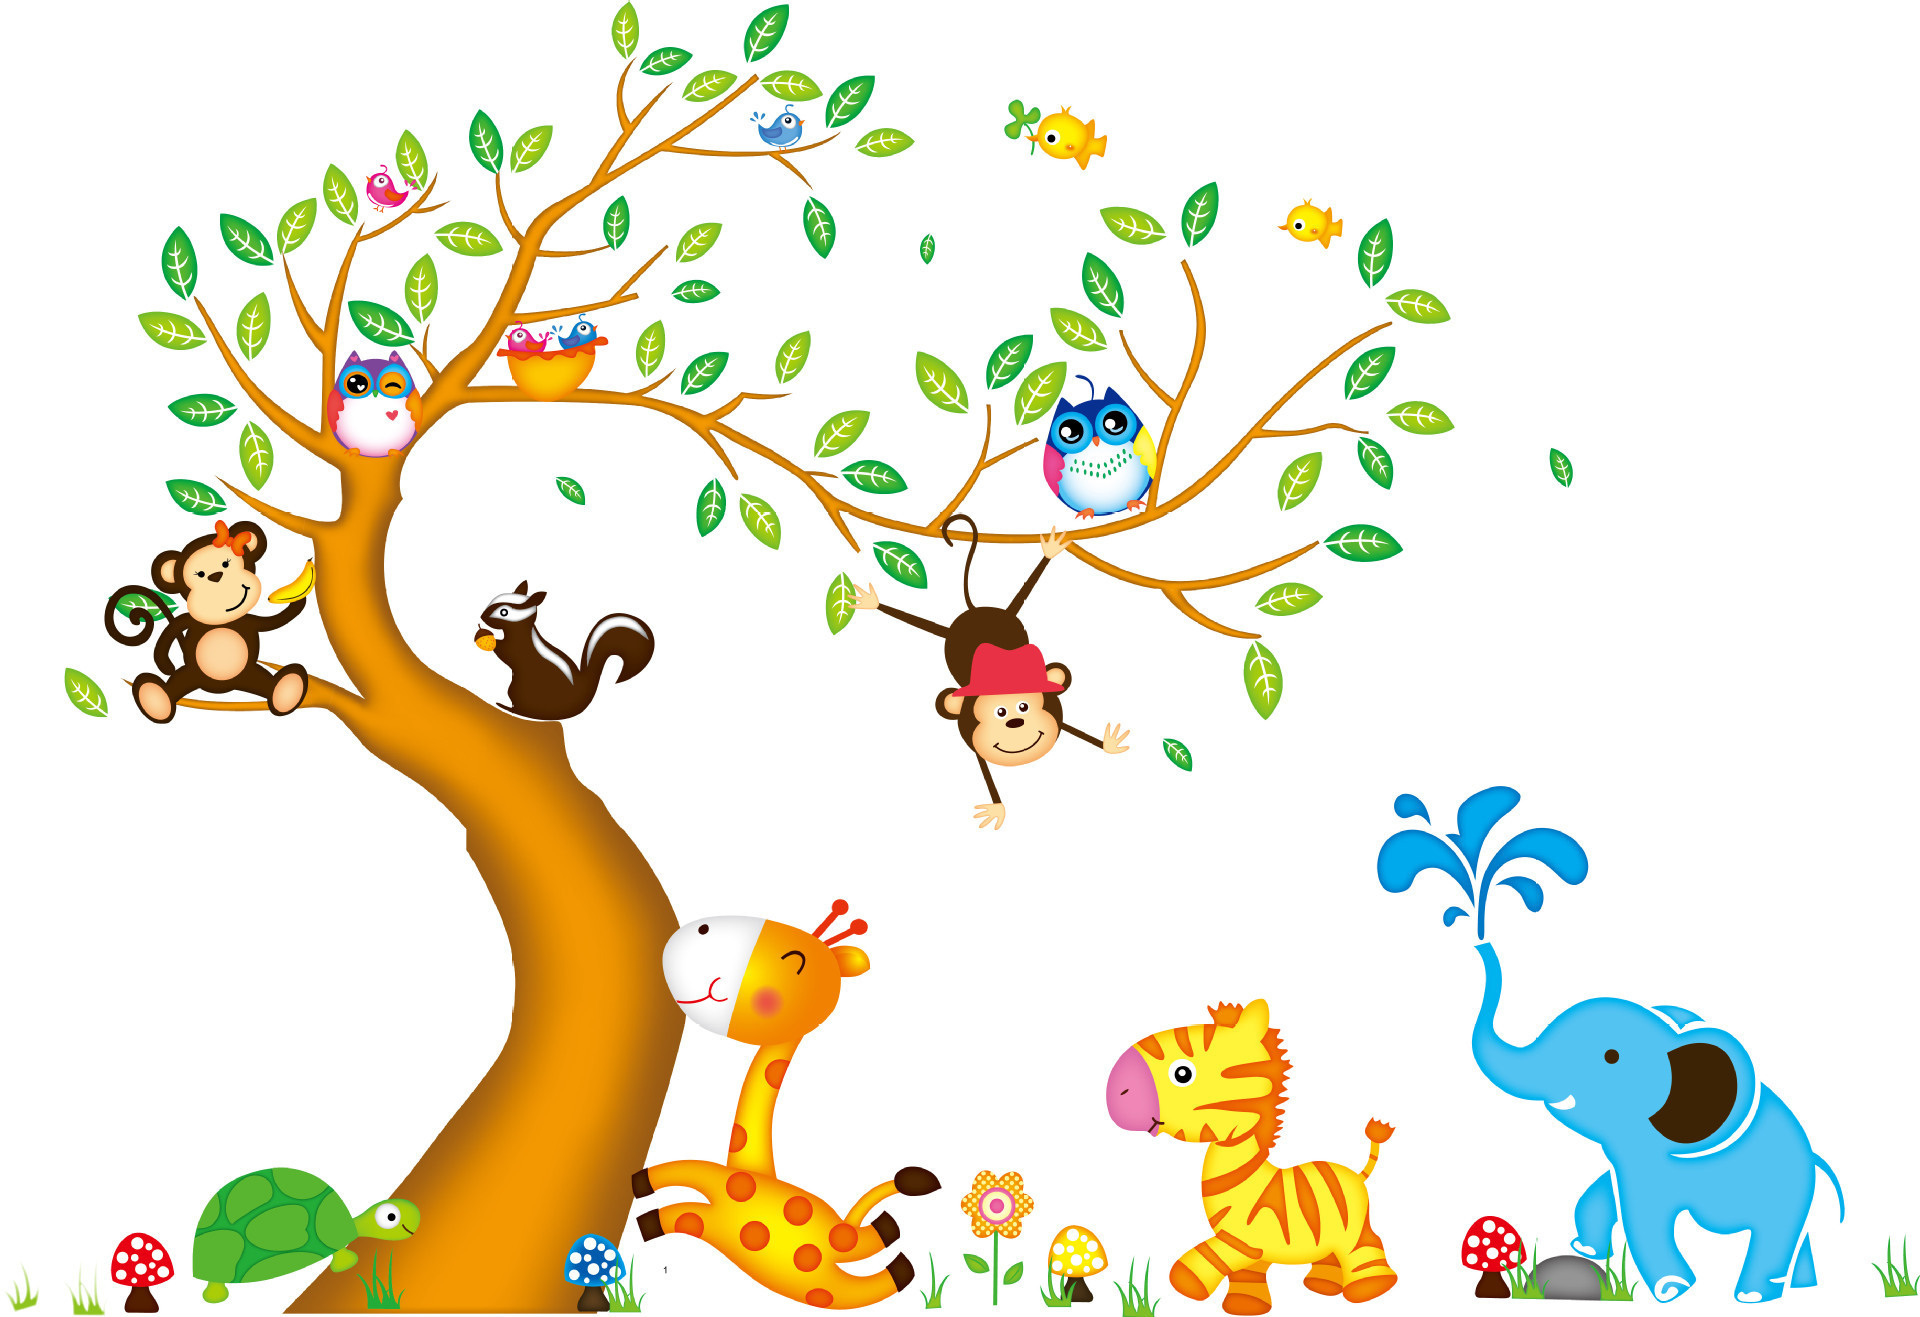 Removable Christmas Wall Stickers 135 197 Animal Jungle Monkey Tree Owl Large Removable Wall